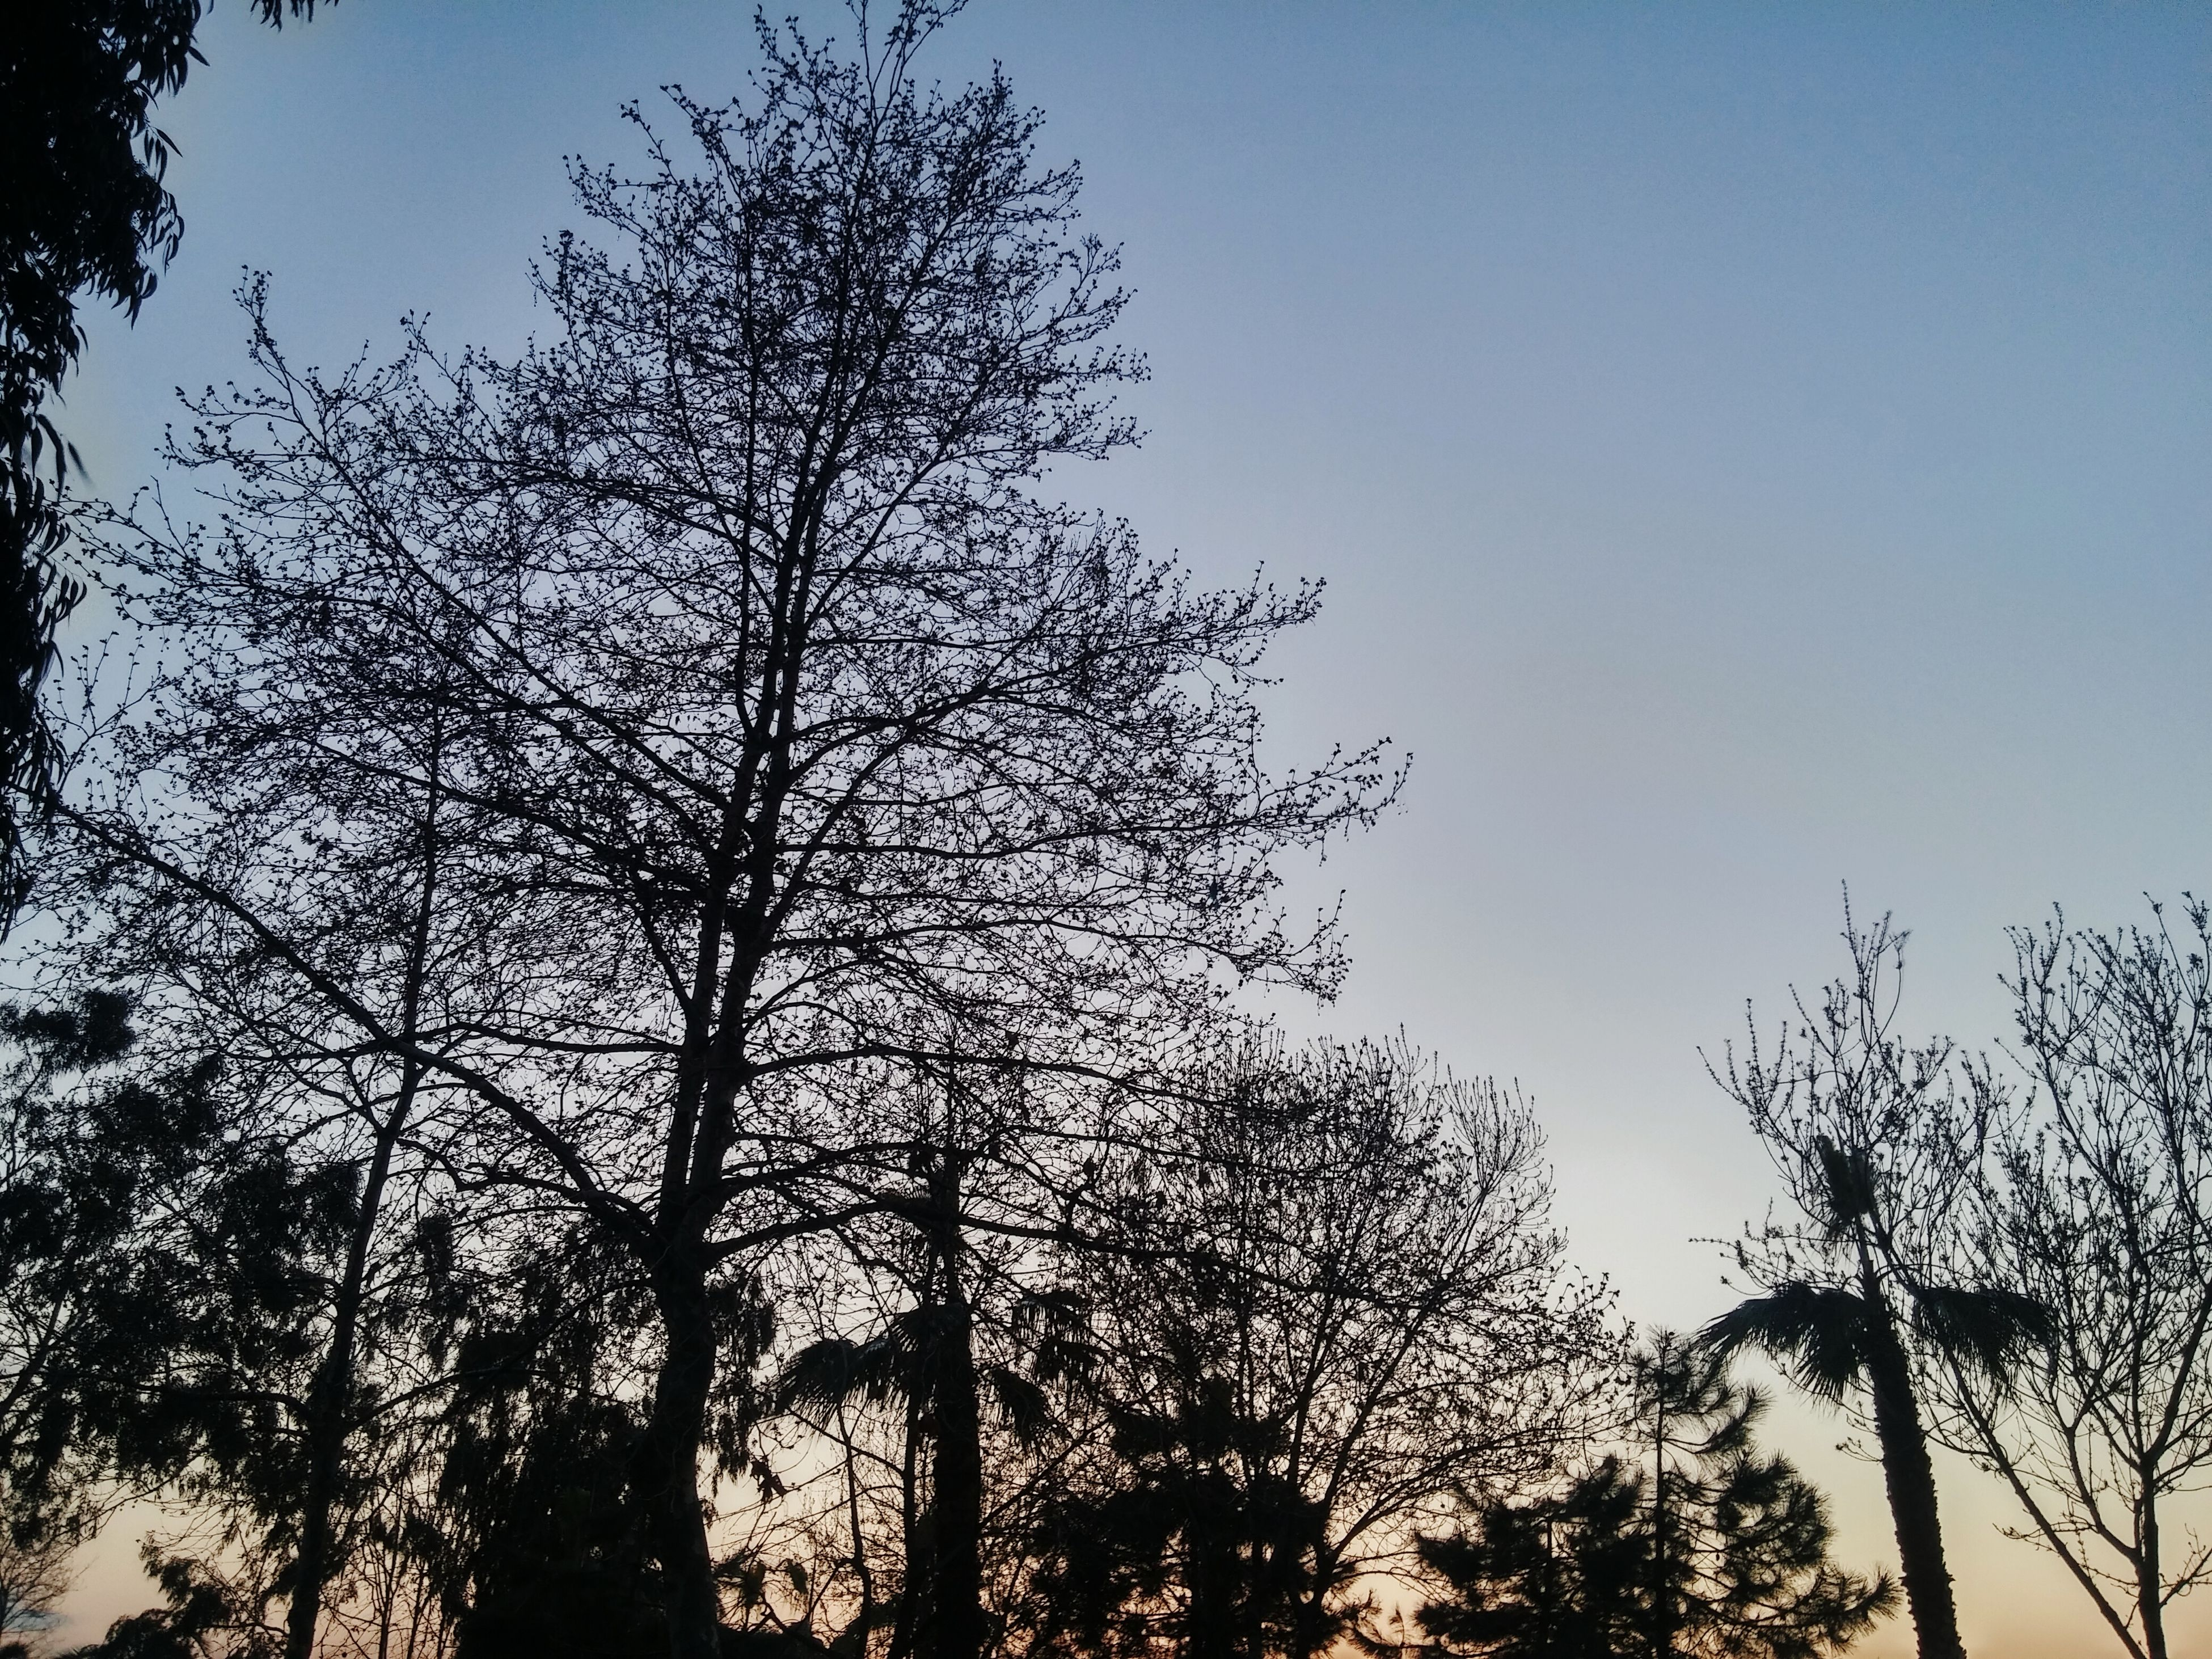 sky, nature, low angle view, tree, growth, no people, outdoors, sunset, silhouette, day, beauty in nature, close-up